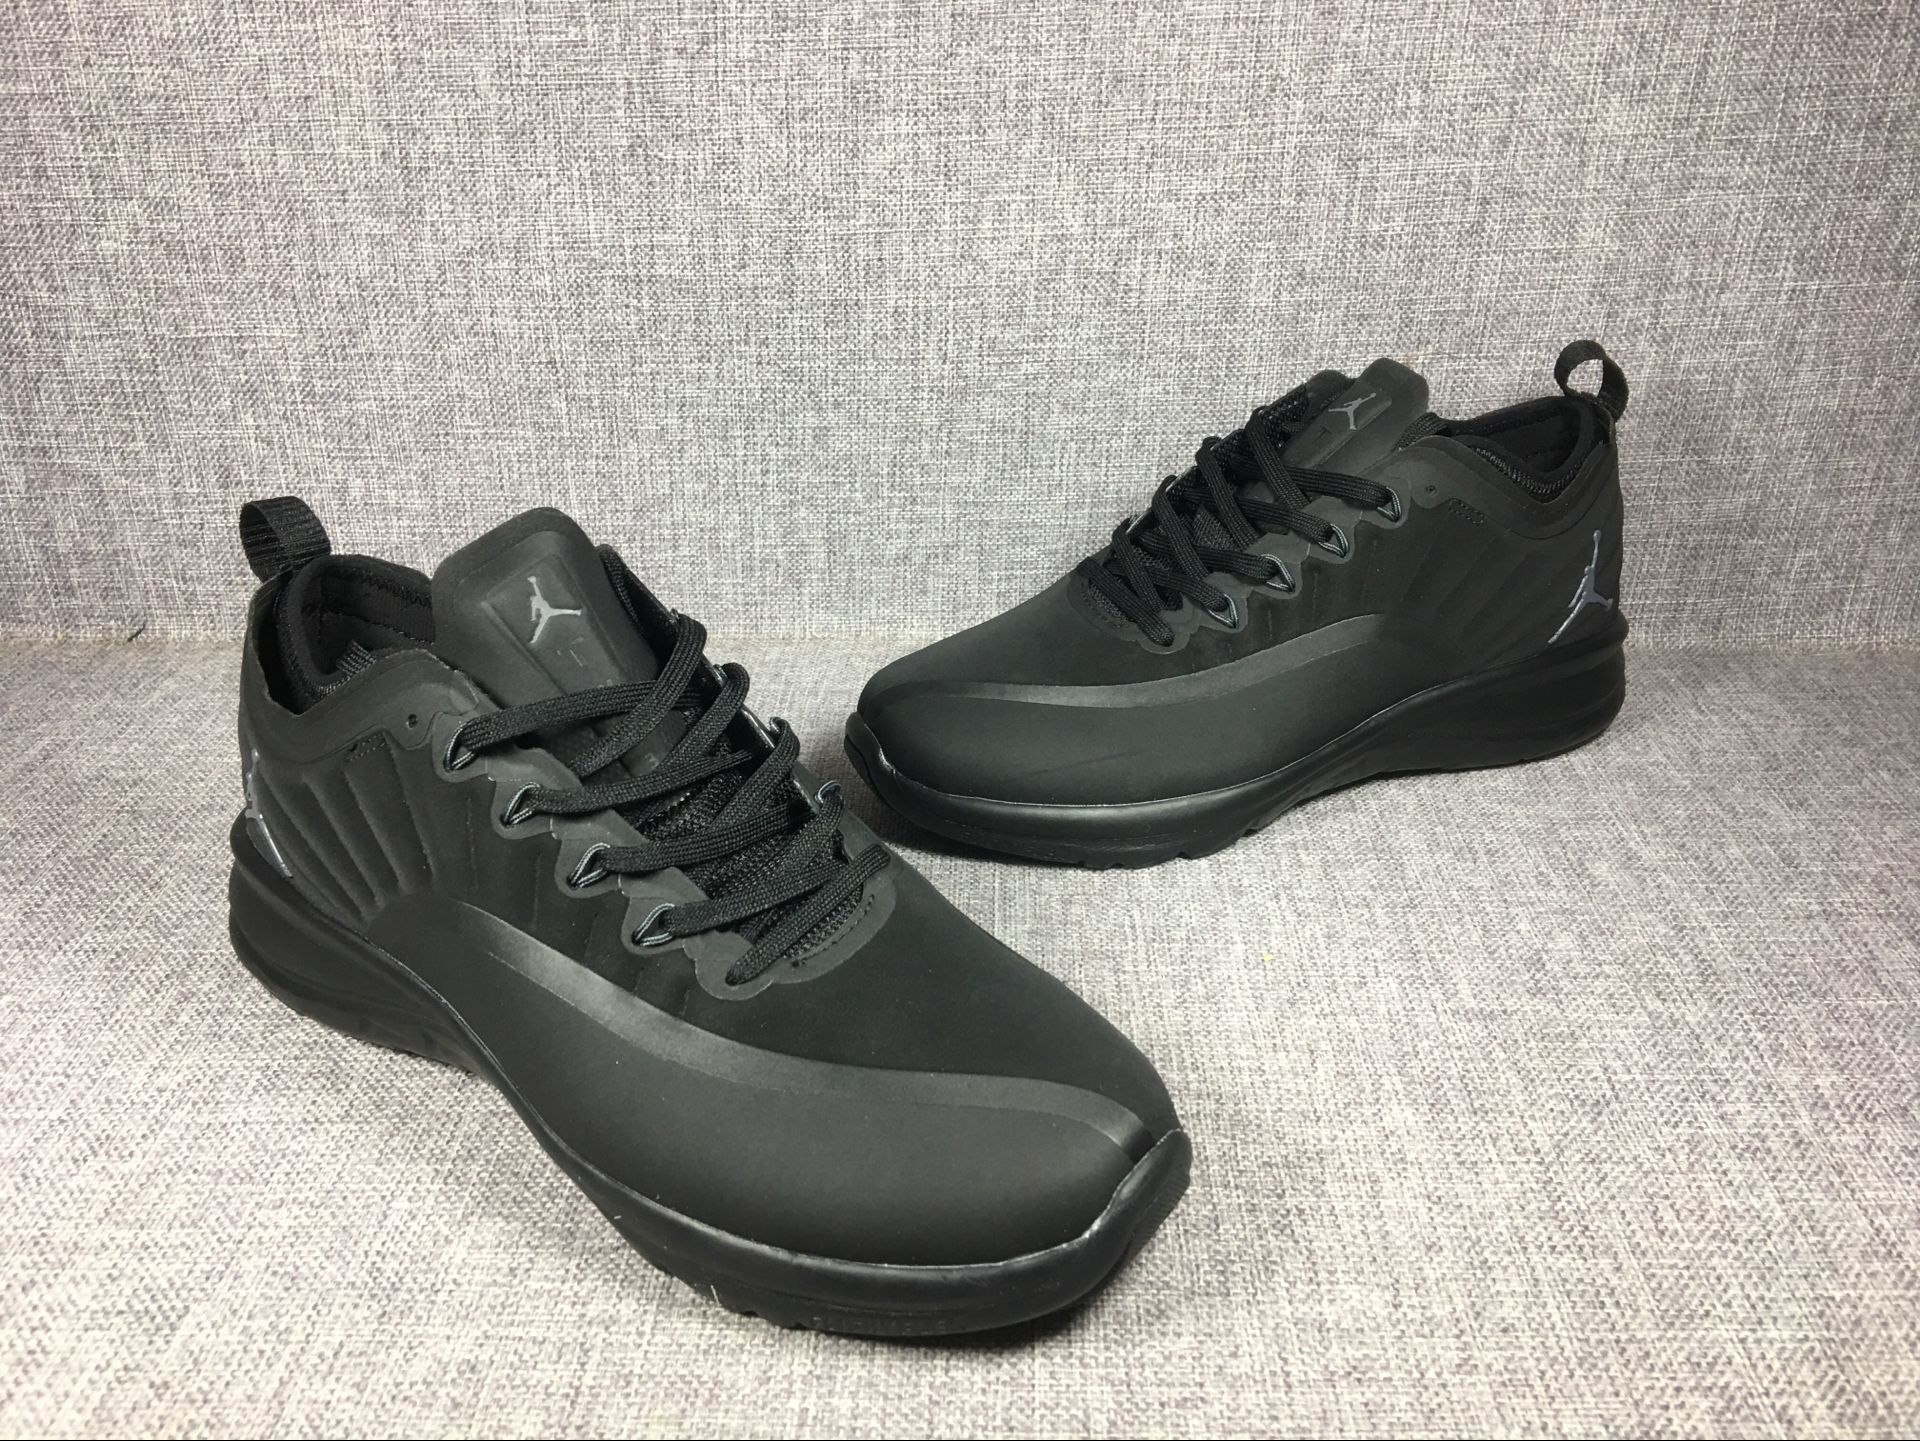 on sale 9a530 33750 2018 New Air Jordan 12 Low All Black Shoes [18retro5414 ...